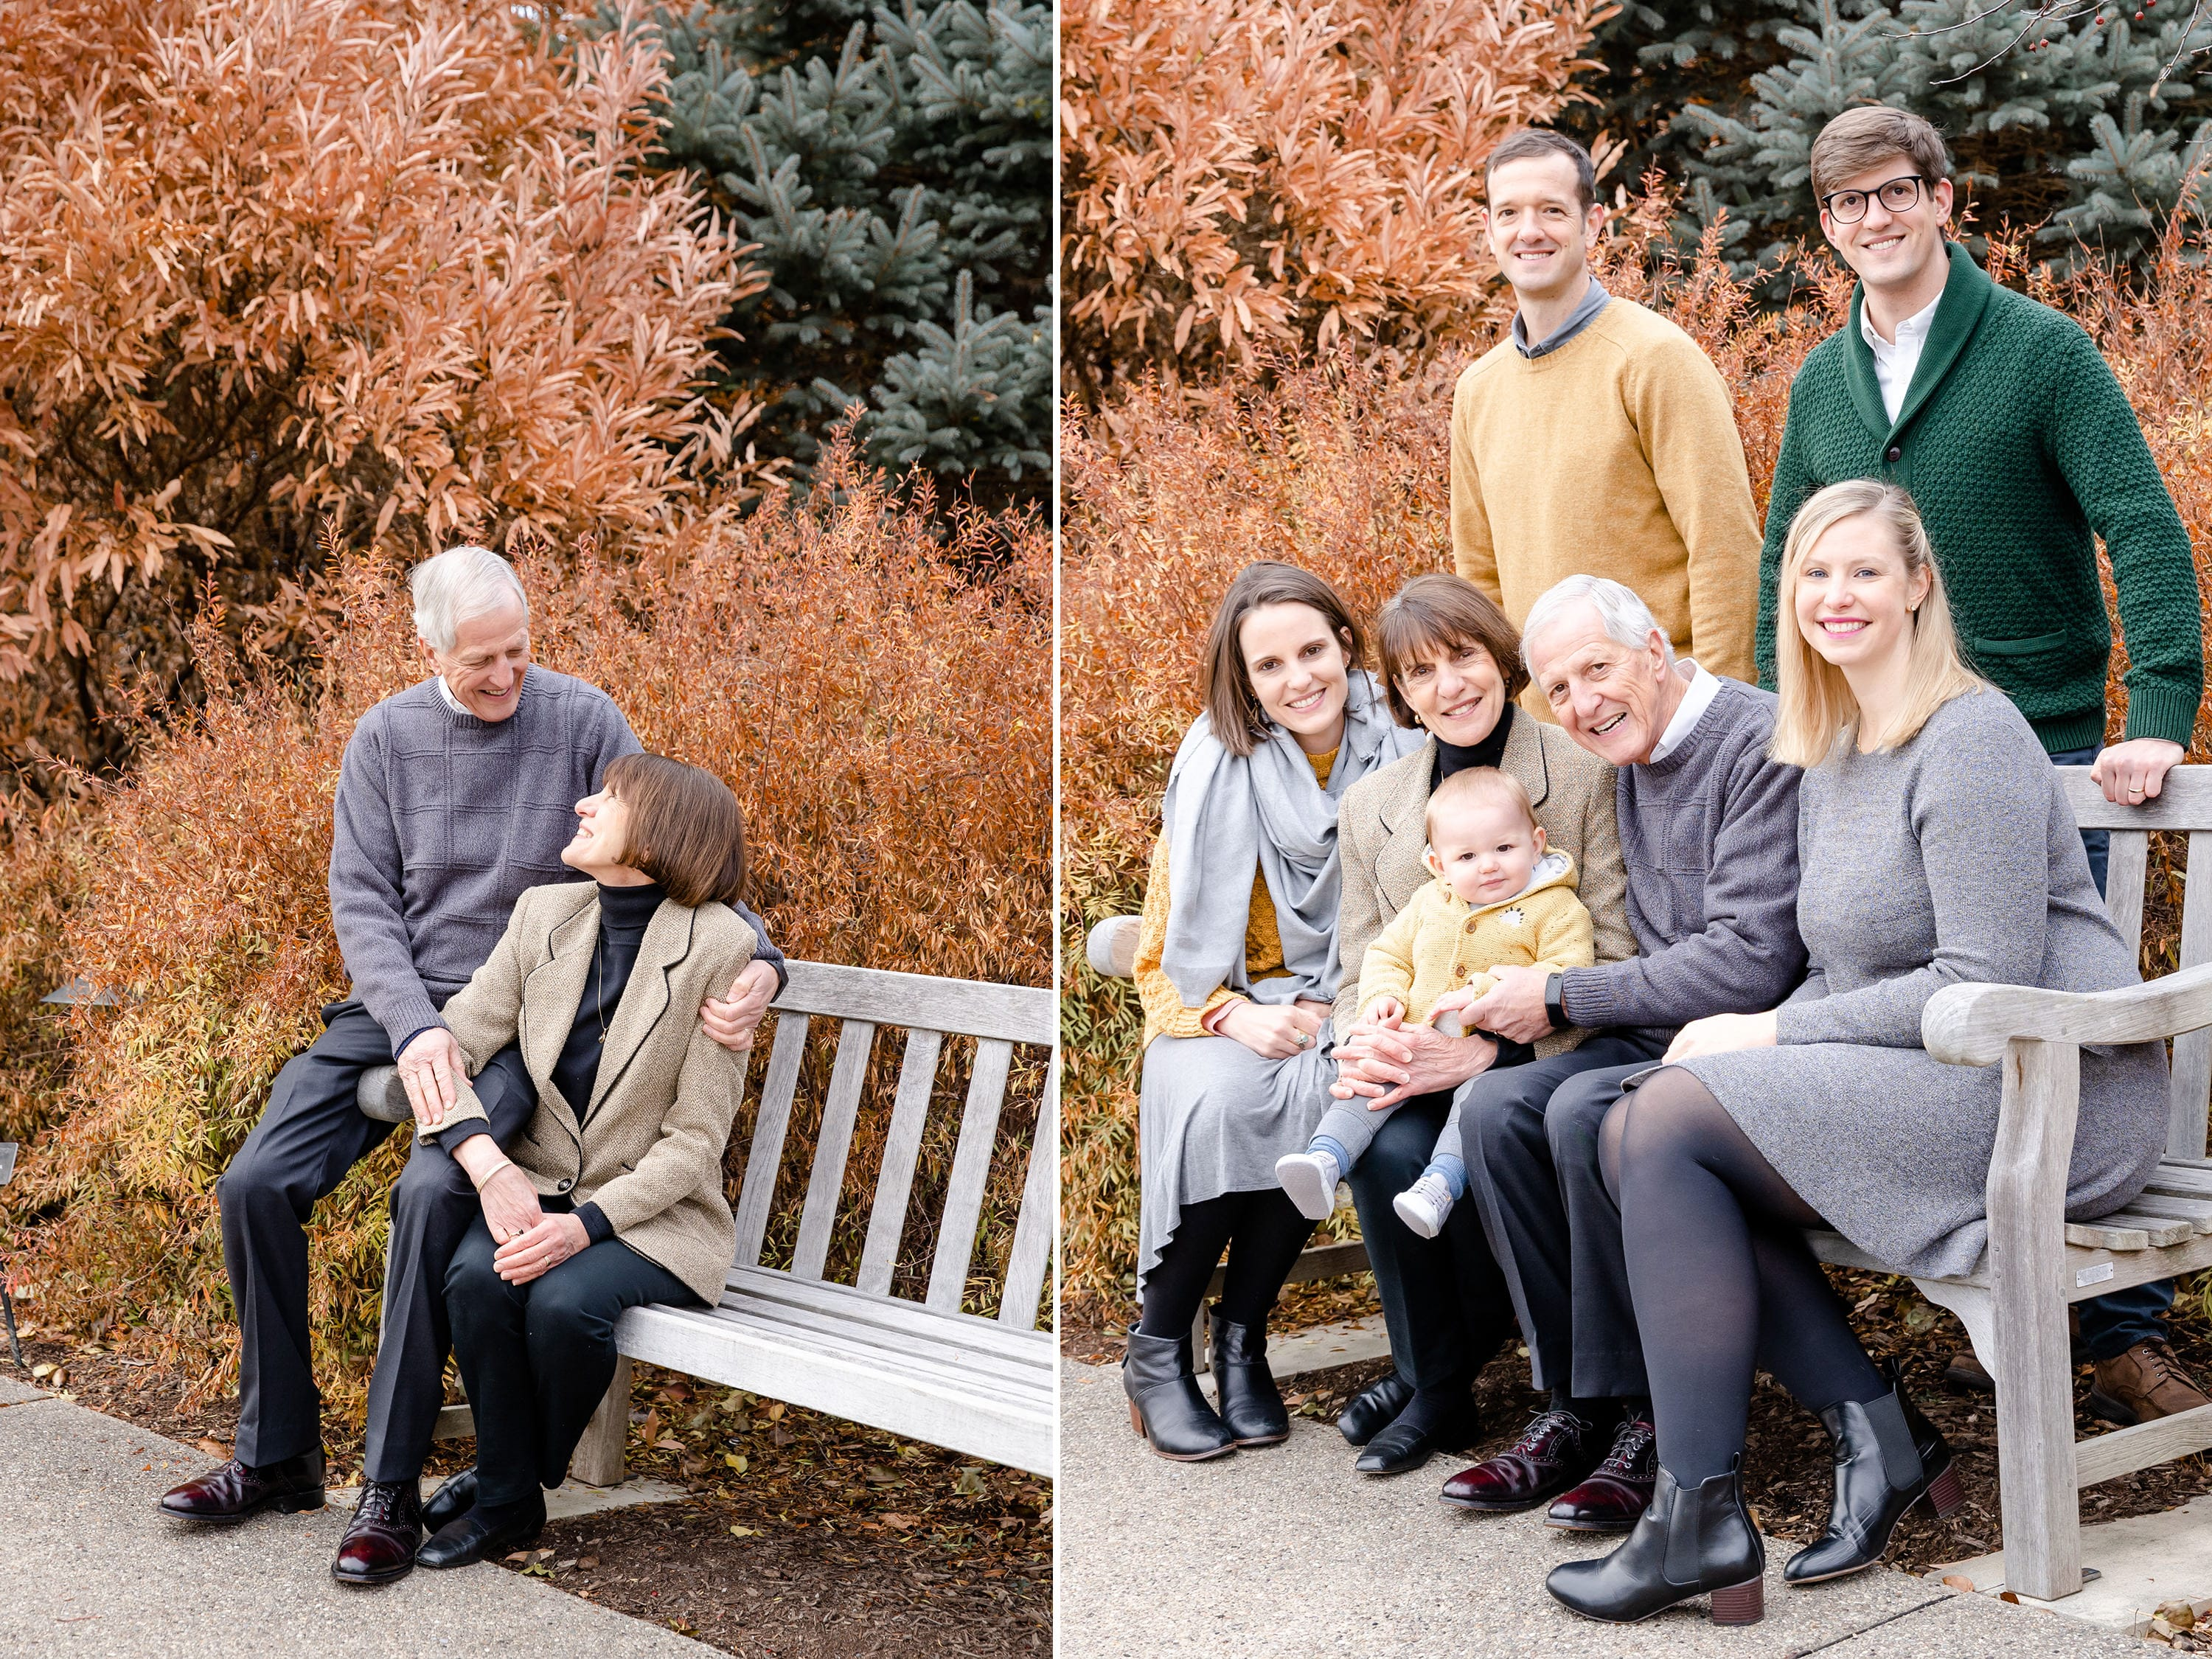 Family reunion for fall photo at Penn State arboretum